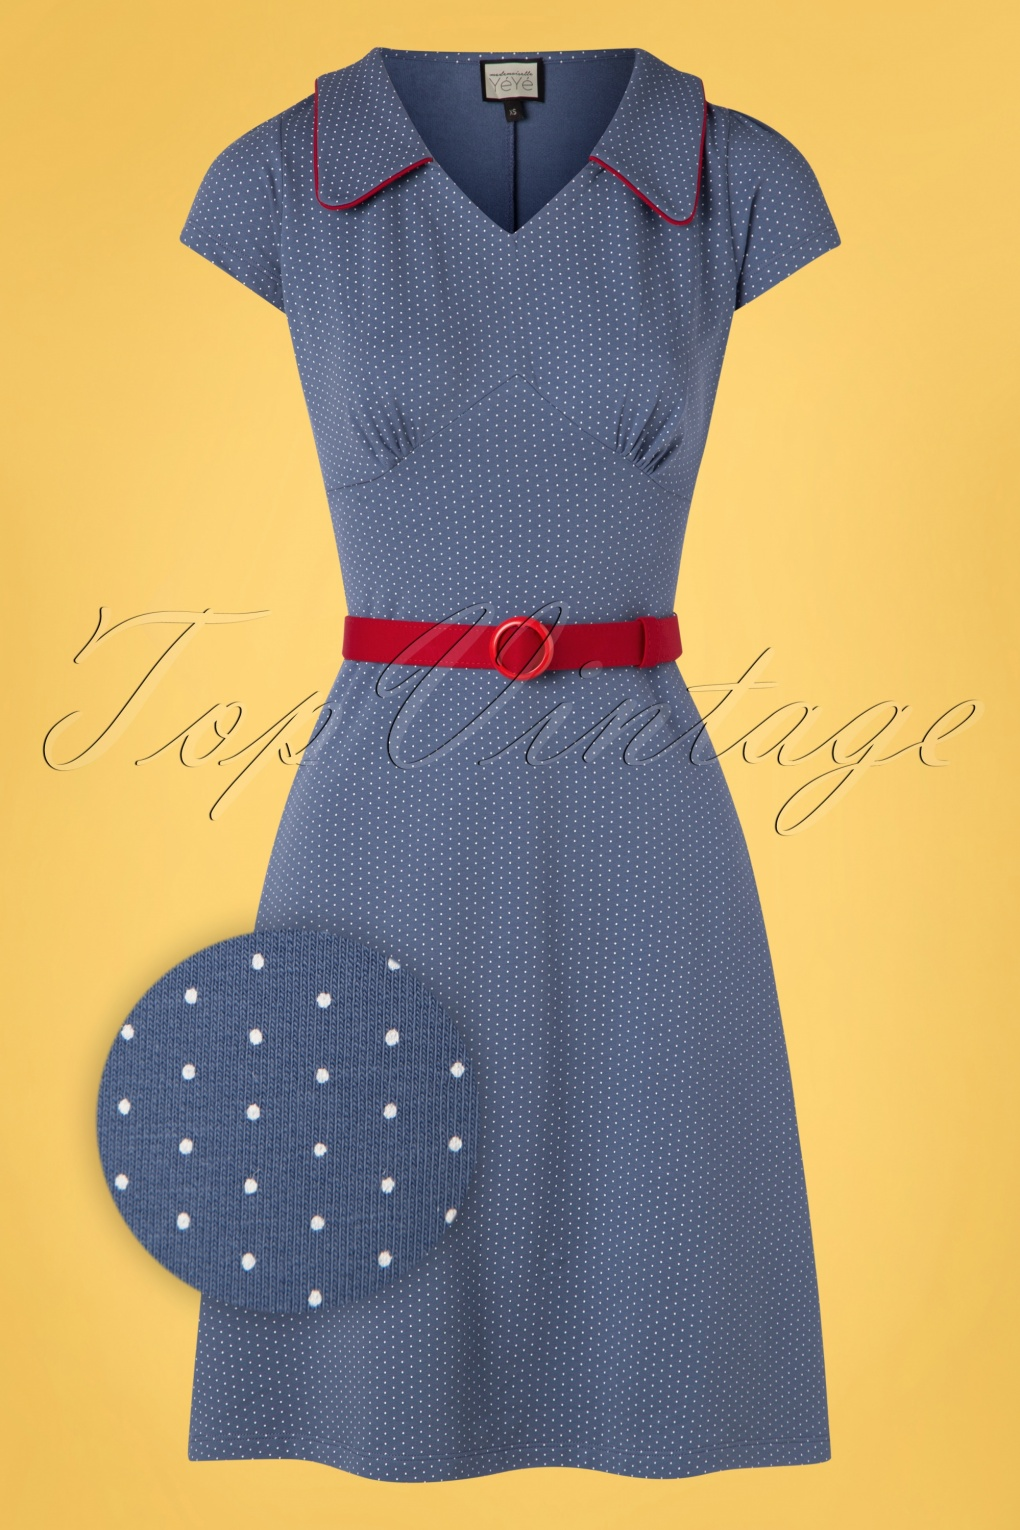 500 Vintage Style Dresses for Sale | Vintage Inspired Dresses 60s Vintage Moments Polkadots Dress in Blue £92.08 AT vintagedancer.com